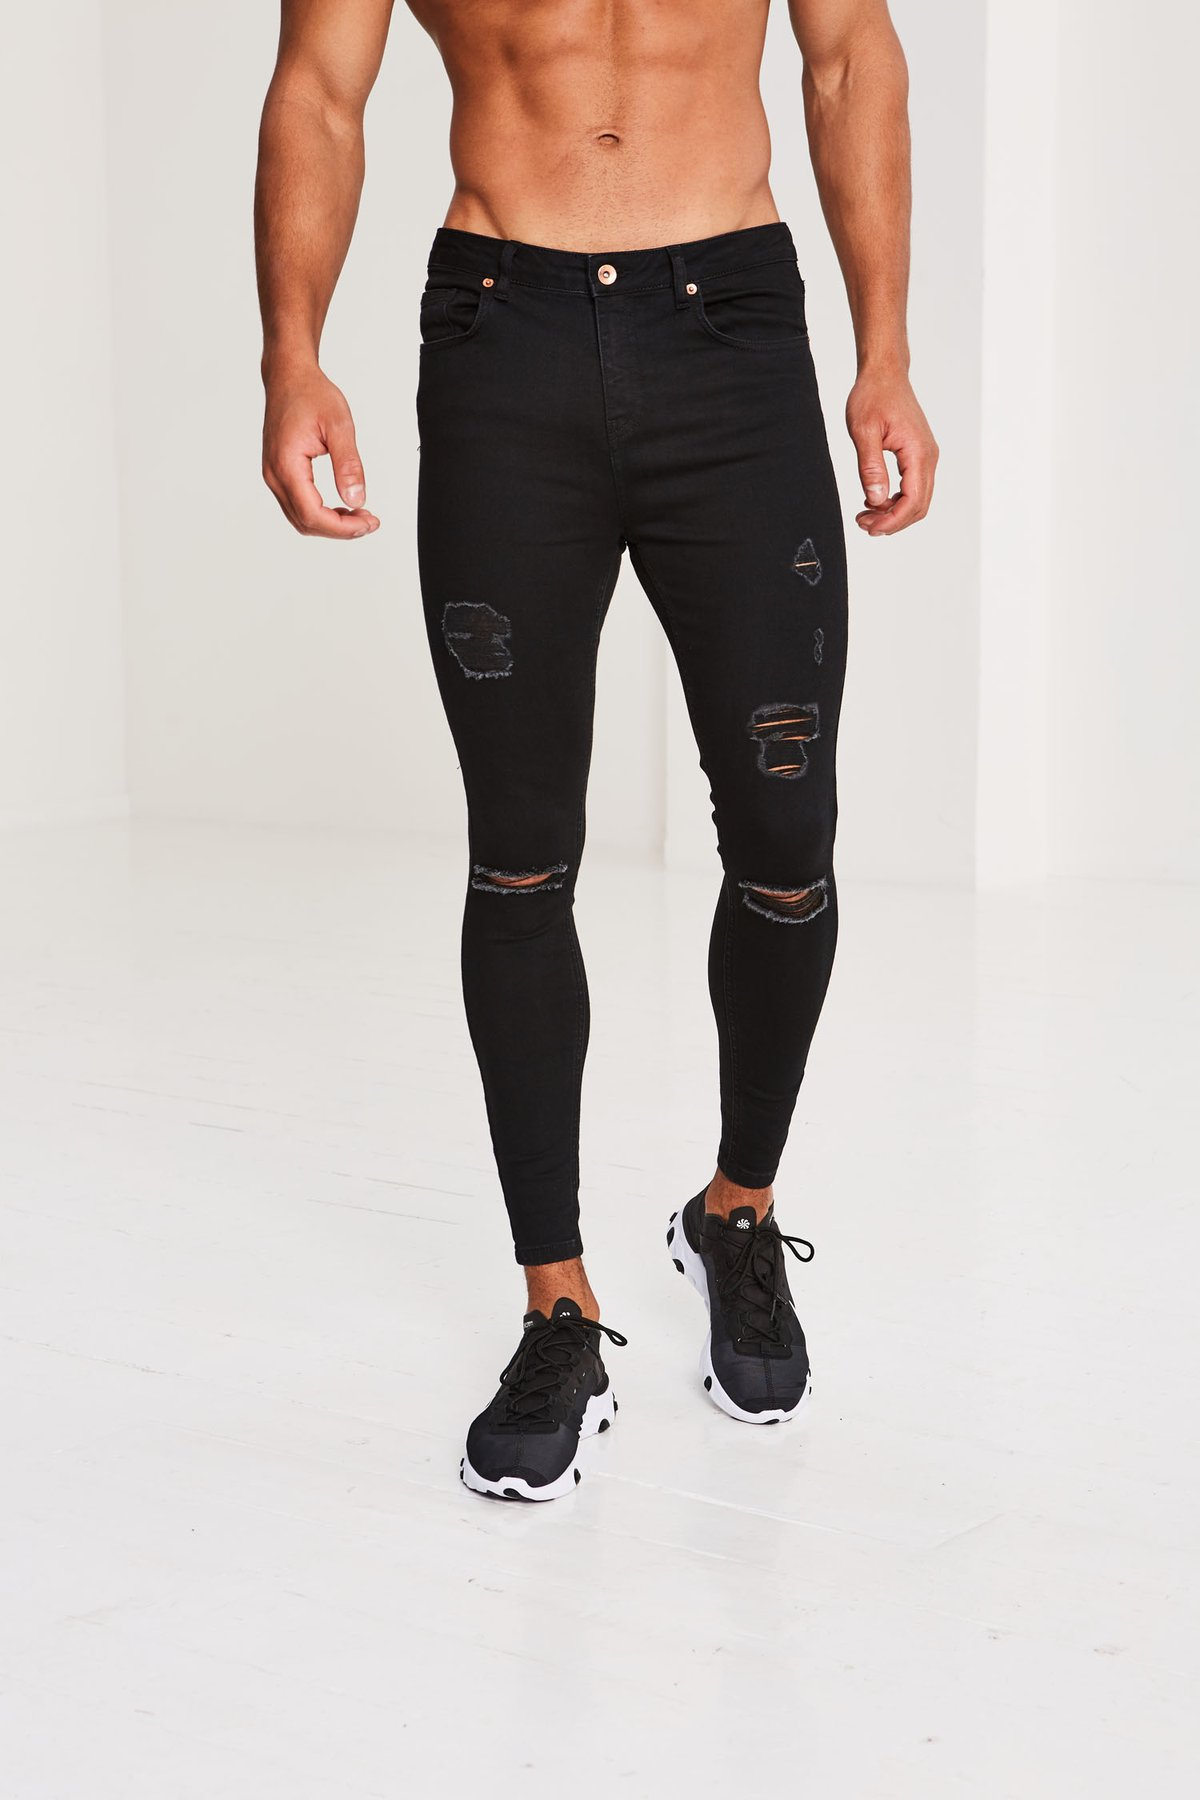 Pré London – Ripped and Repaired – Black